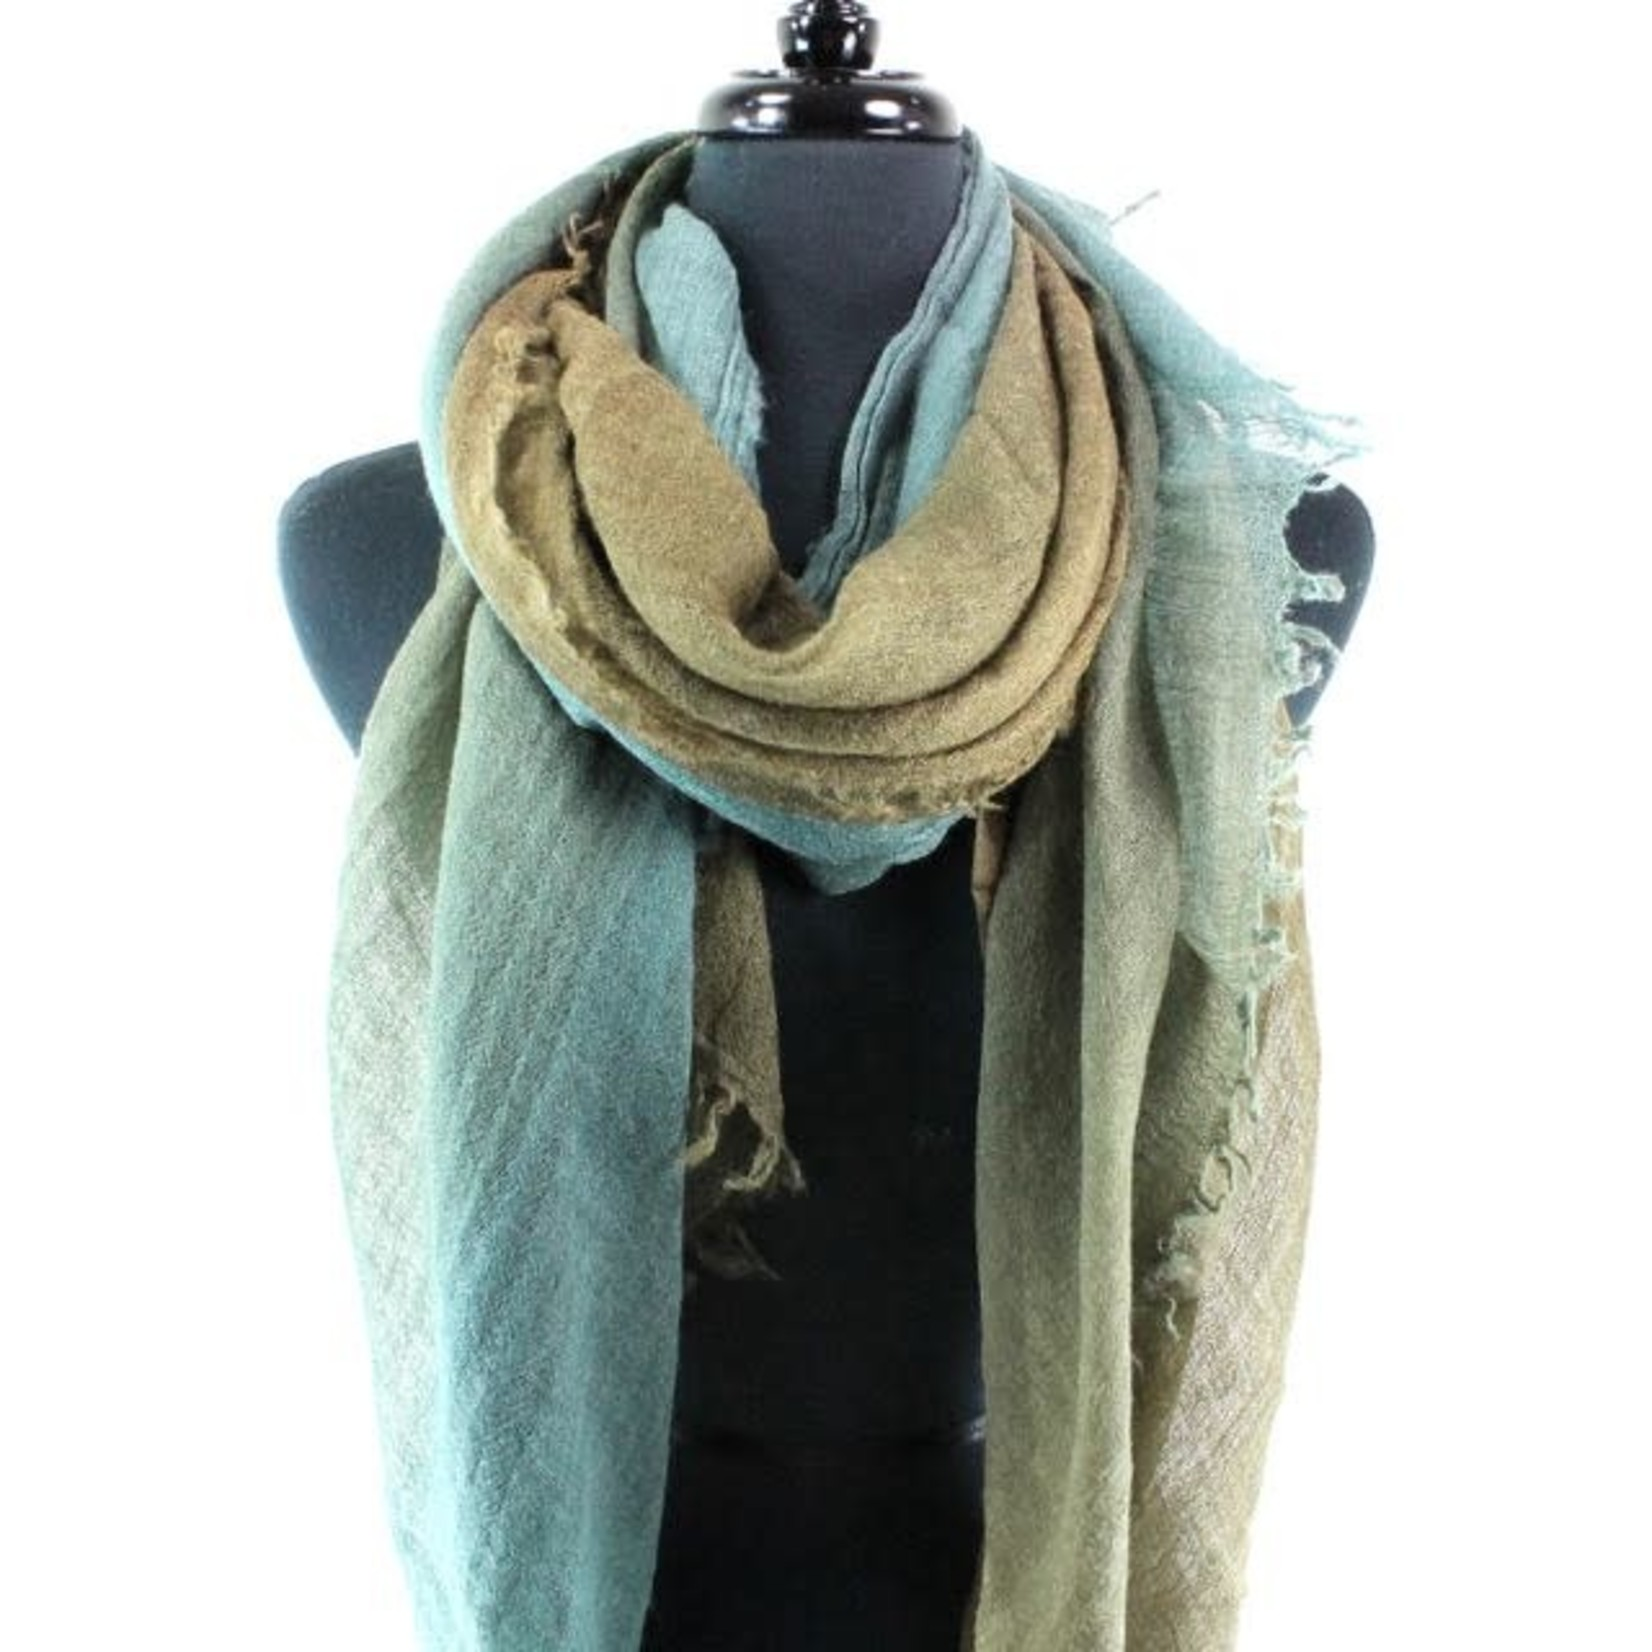 Spanish Cloud- Army Green and Teal Scarf